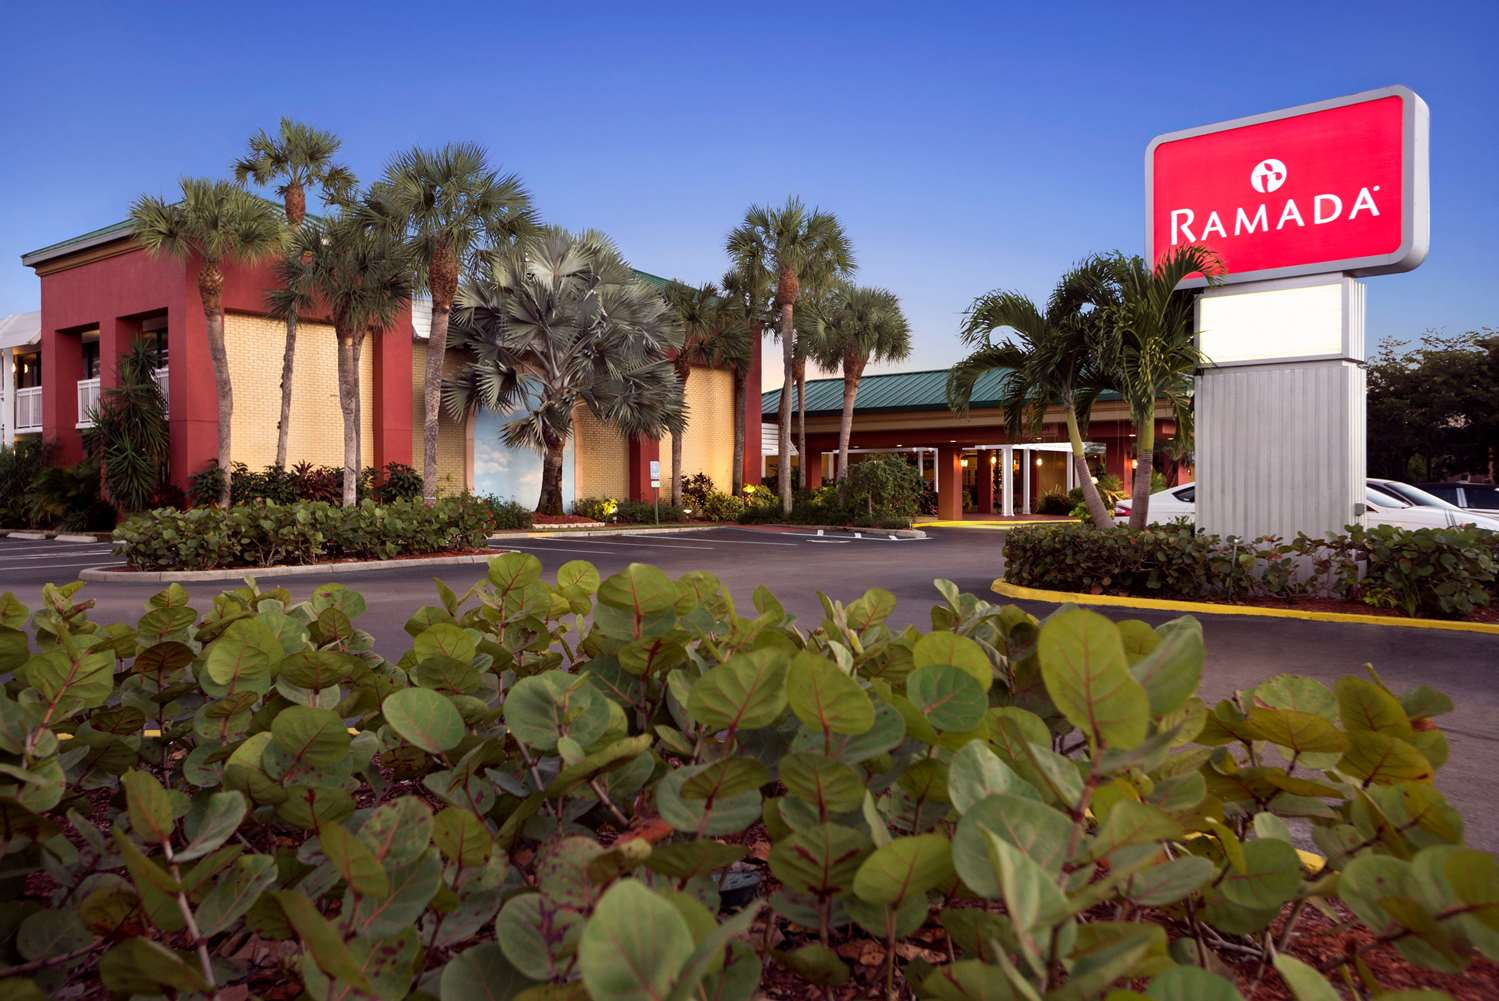 Exterior view - Ramada Inn Naples